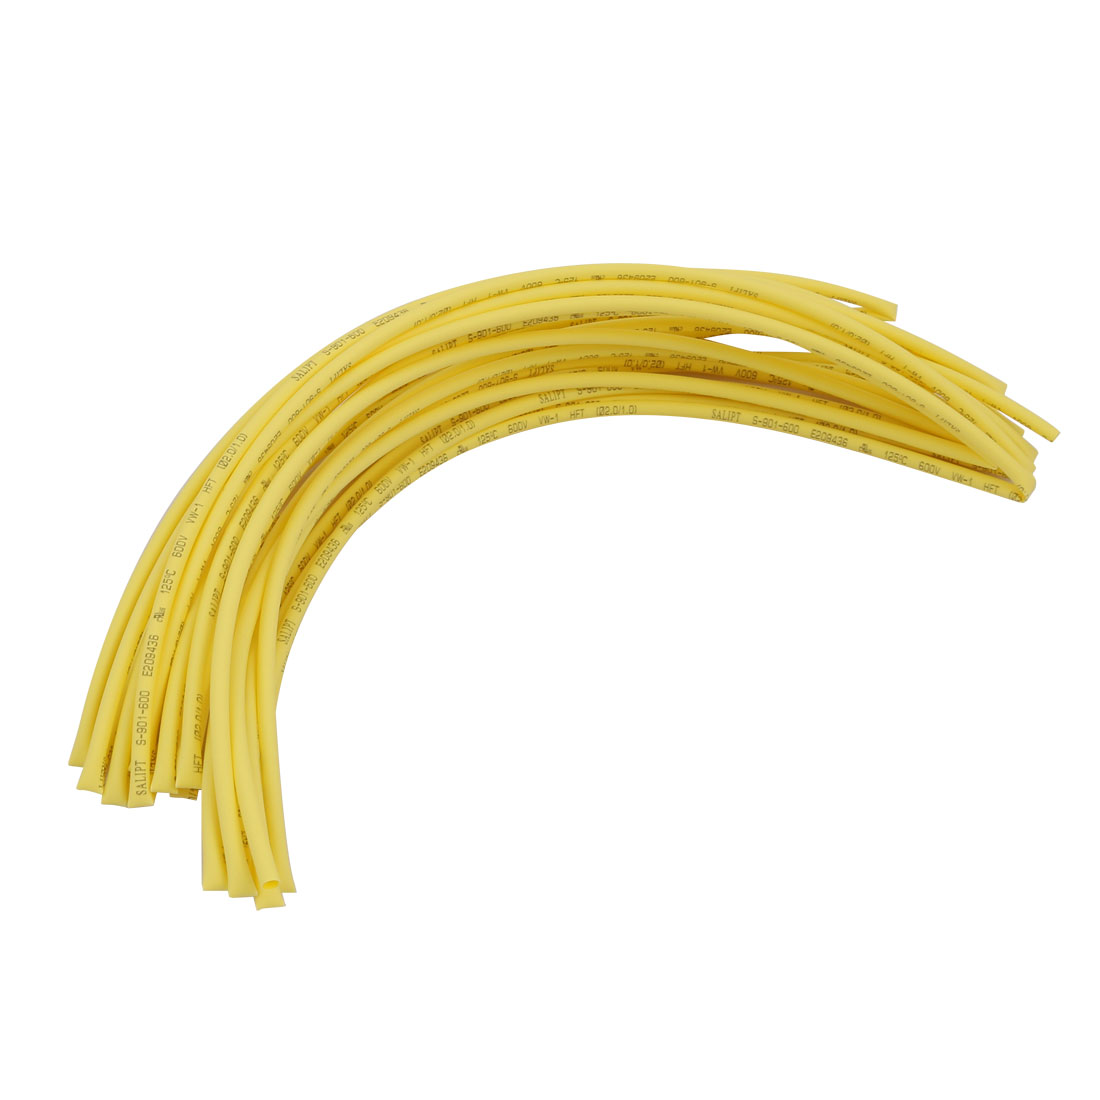 6M 0.08in Inner Dia Polyolefin Flame Retardant Tube Yellow for Wire Repairing